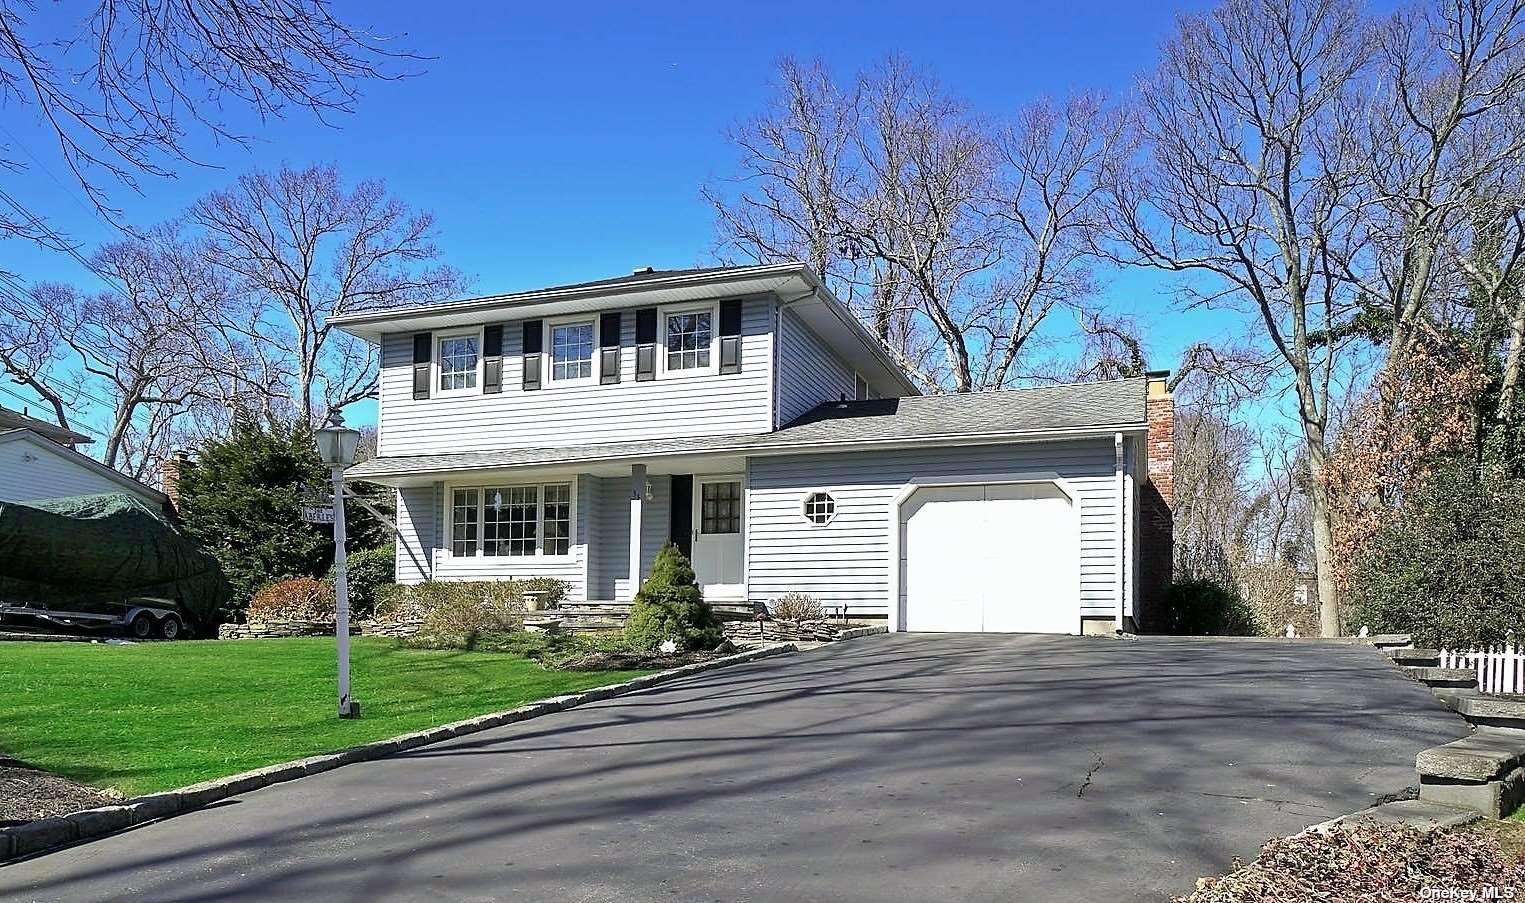 33 Falcon Drive, Hauppauge, New York11788, 3 Bedrooms Bedrooms, ,2 BathroomsBathrooms,Residential,For Sale,Falcon,3292797